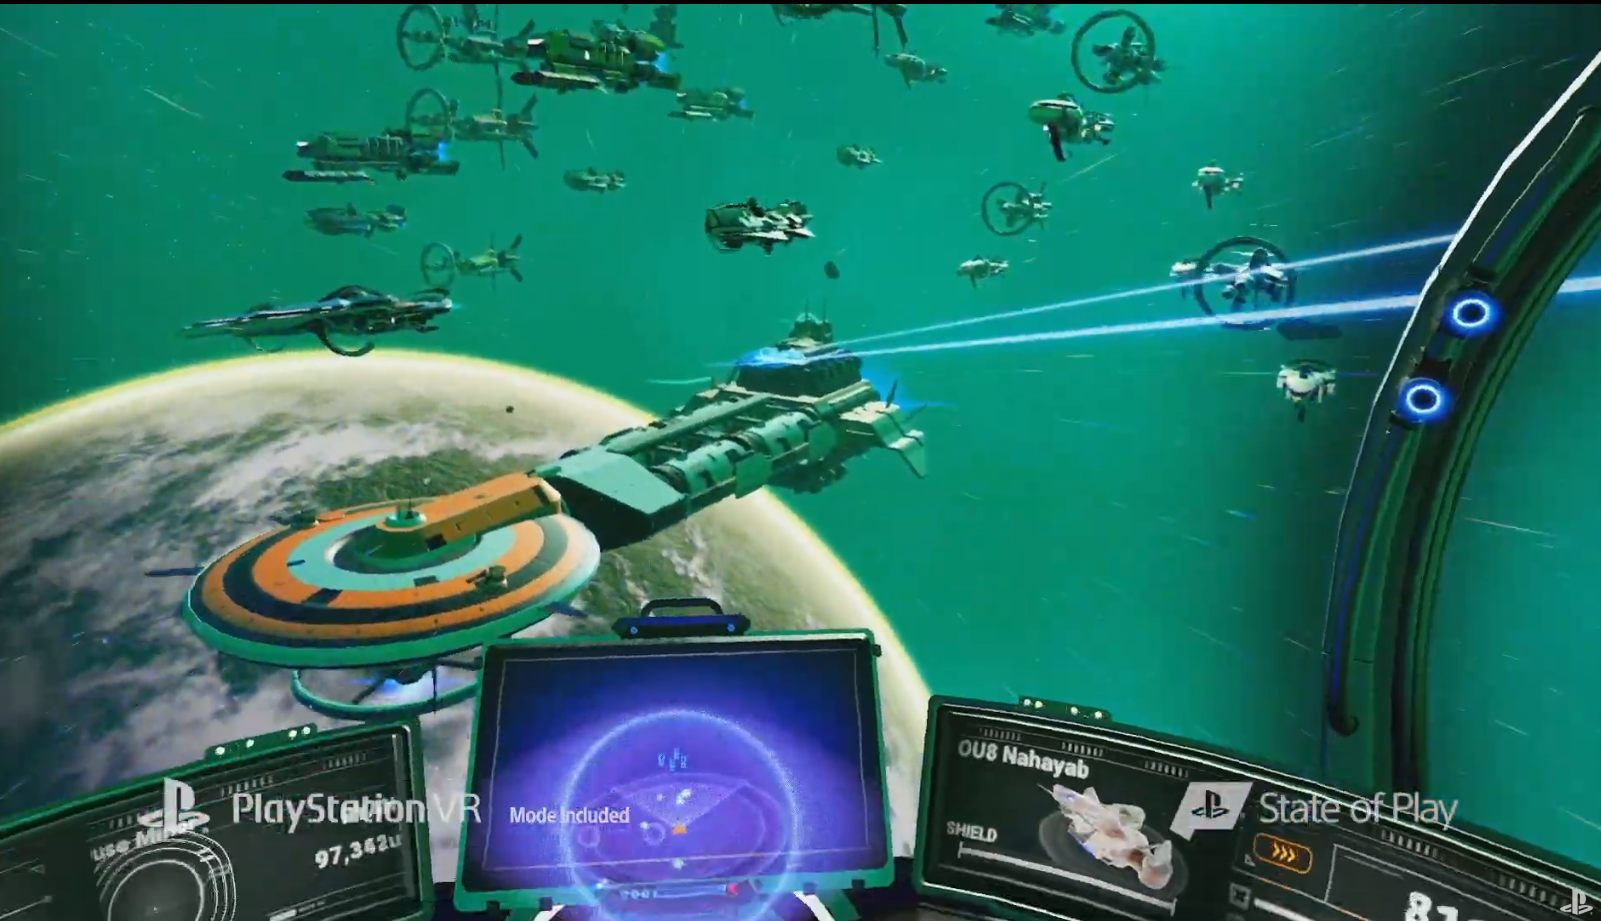 No Man's Sky VR PlayStation PS VR Sony state of play screenshot gameplay virtual reality